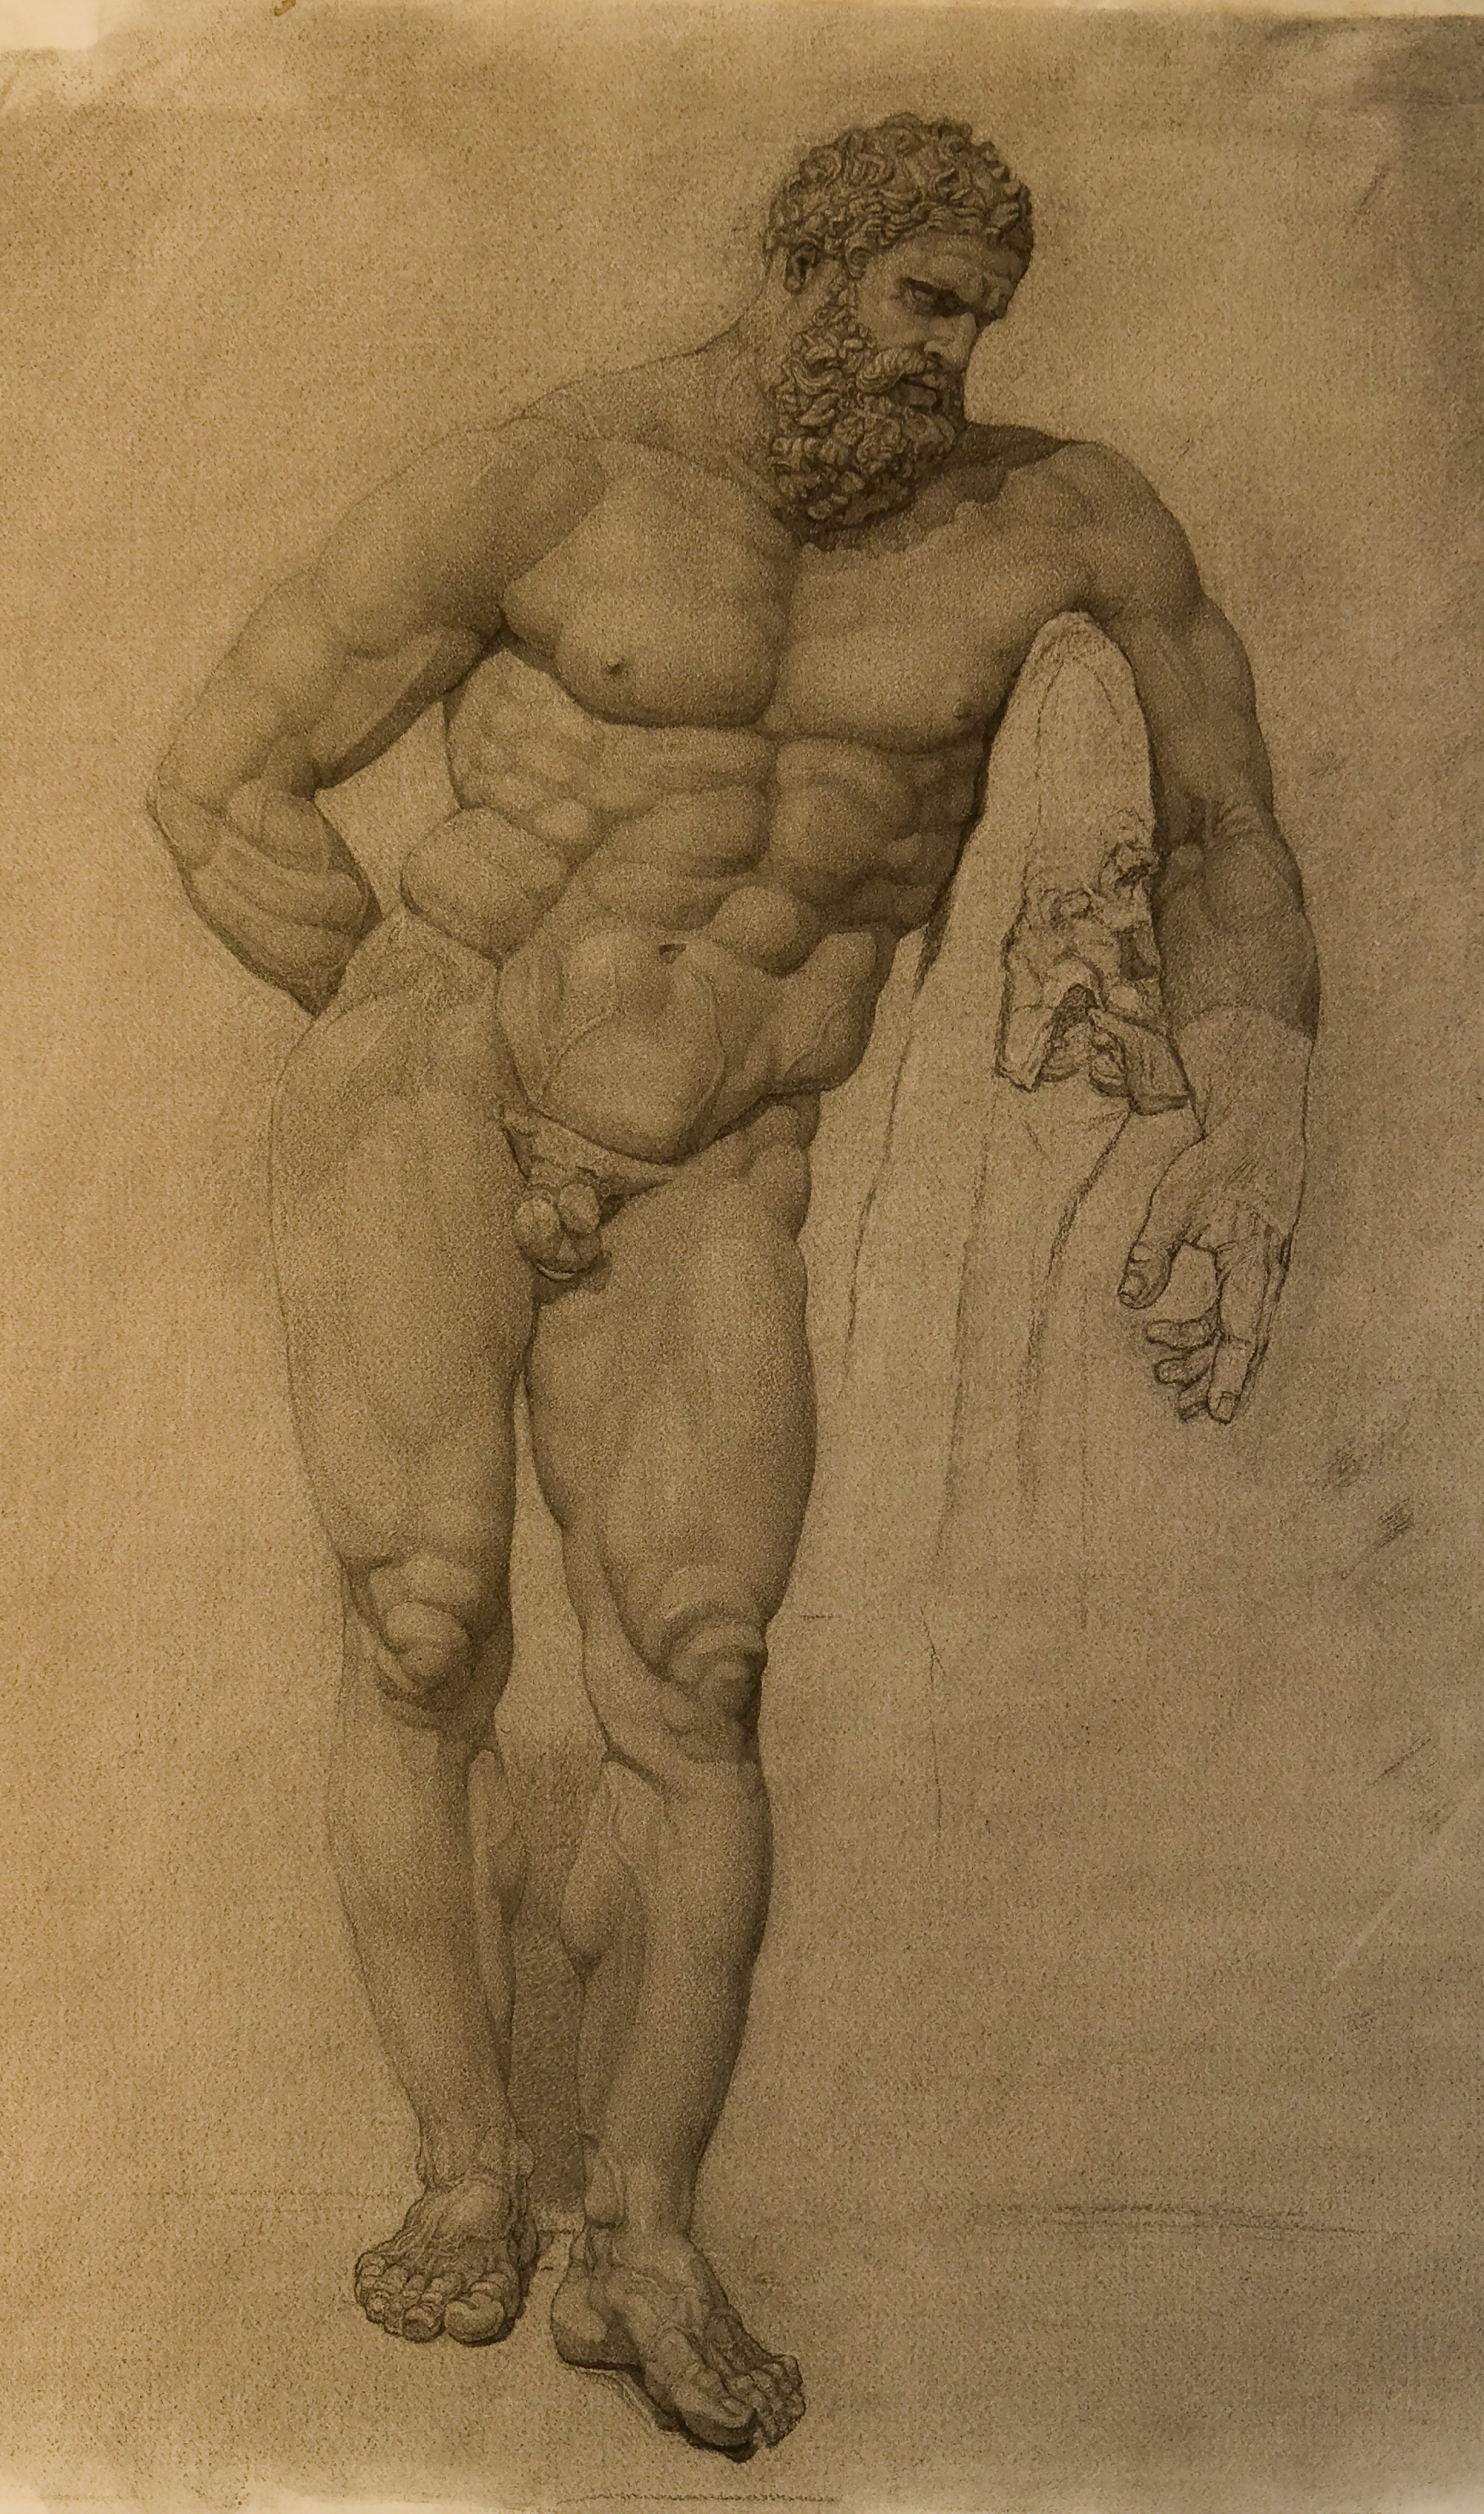 Farnese Hercules, Hellenistic sculpture in the National Archeology Museum, Naples, charcoal, by P. Brad Parker